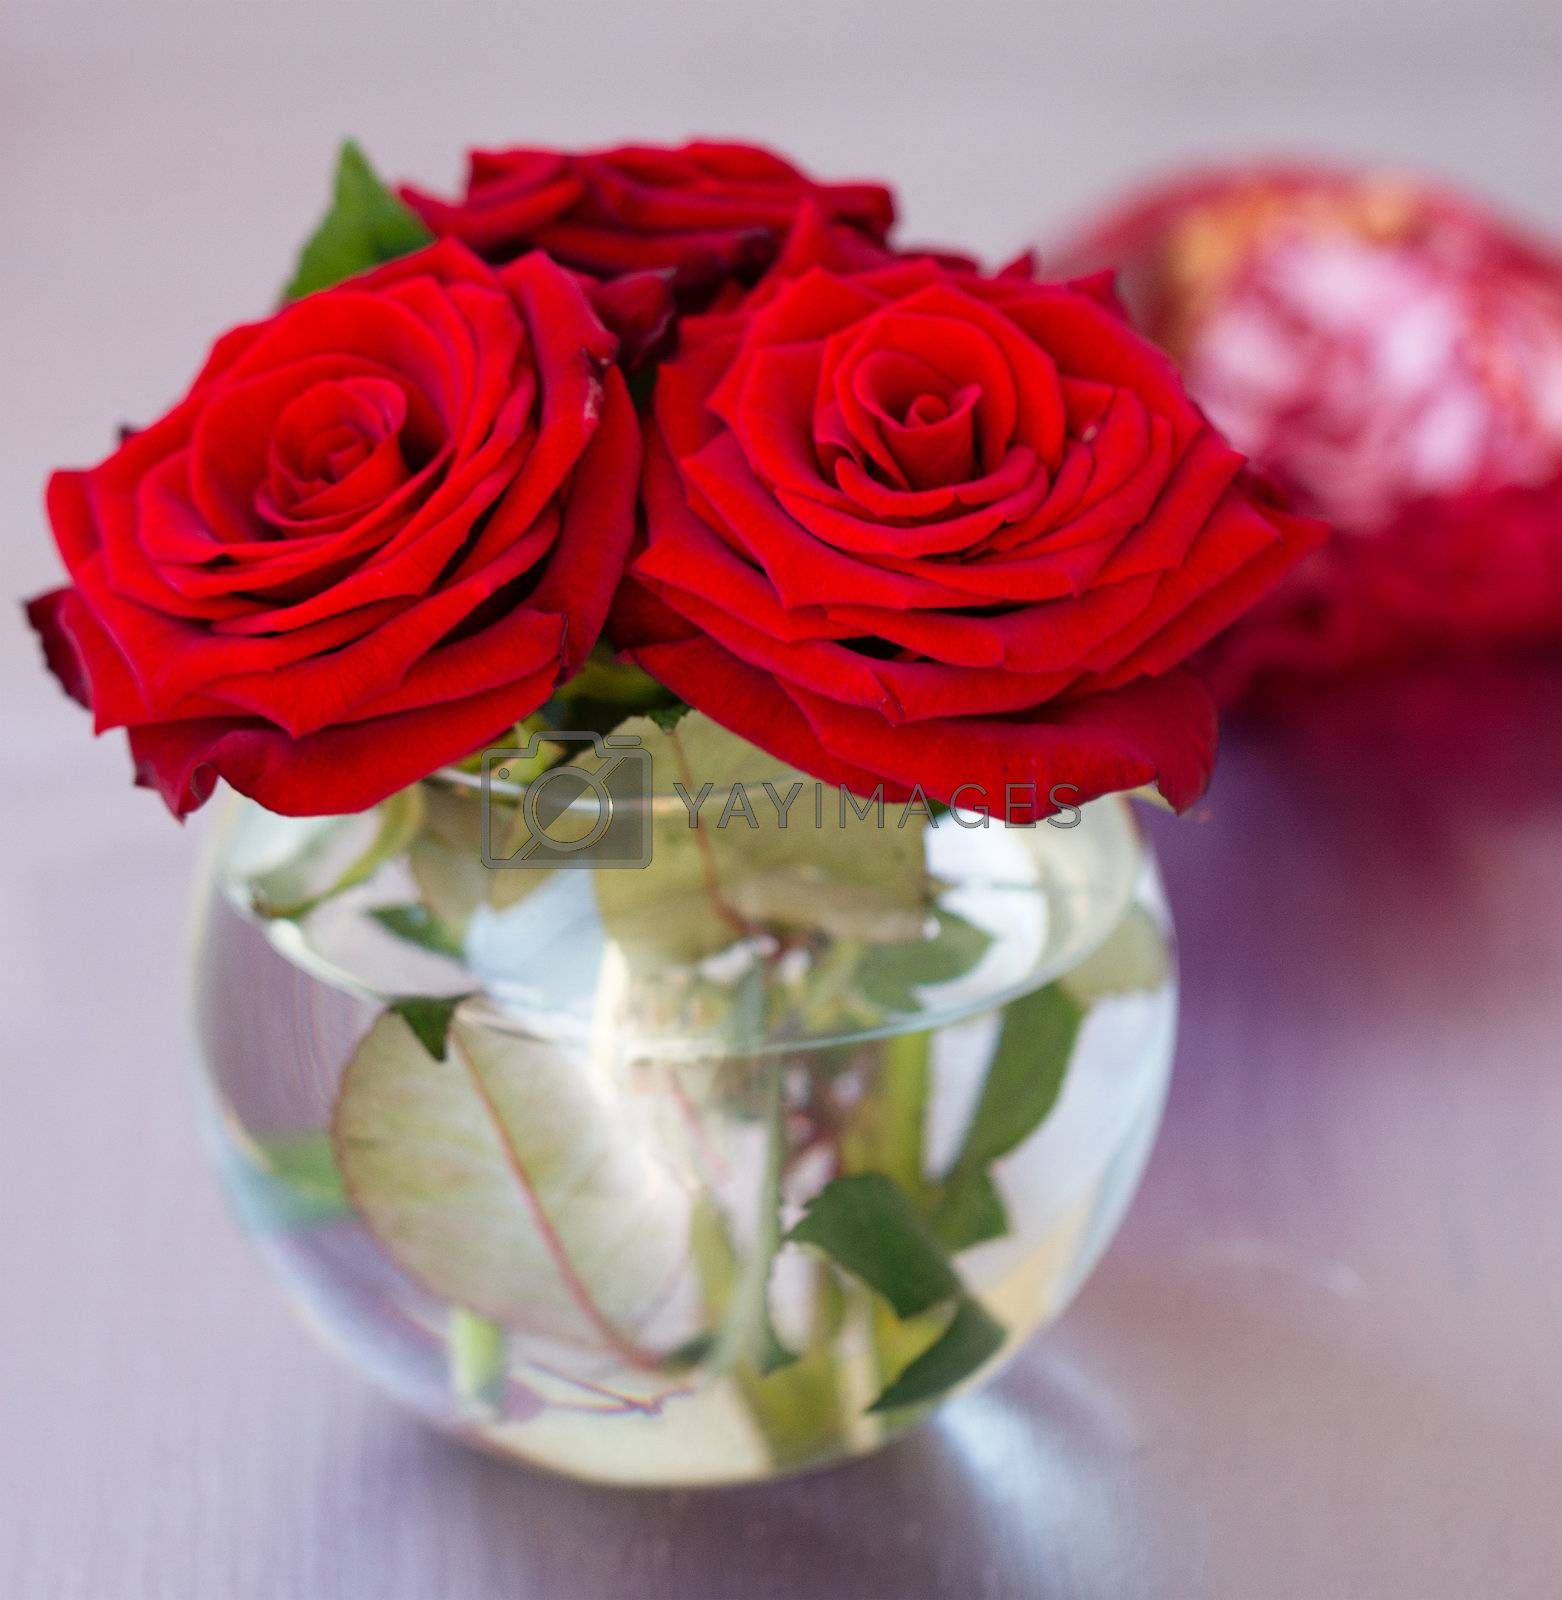 vase with red roses on the table by victosha